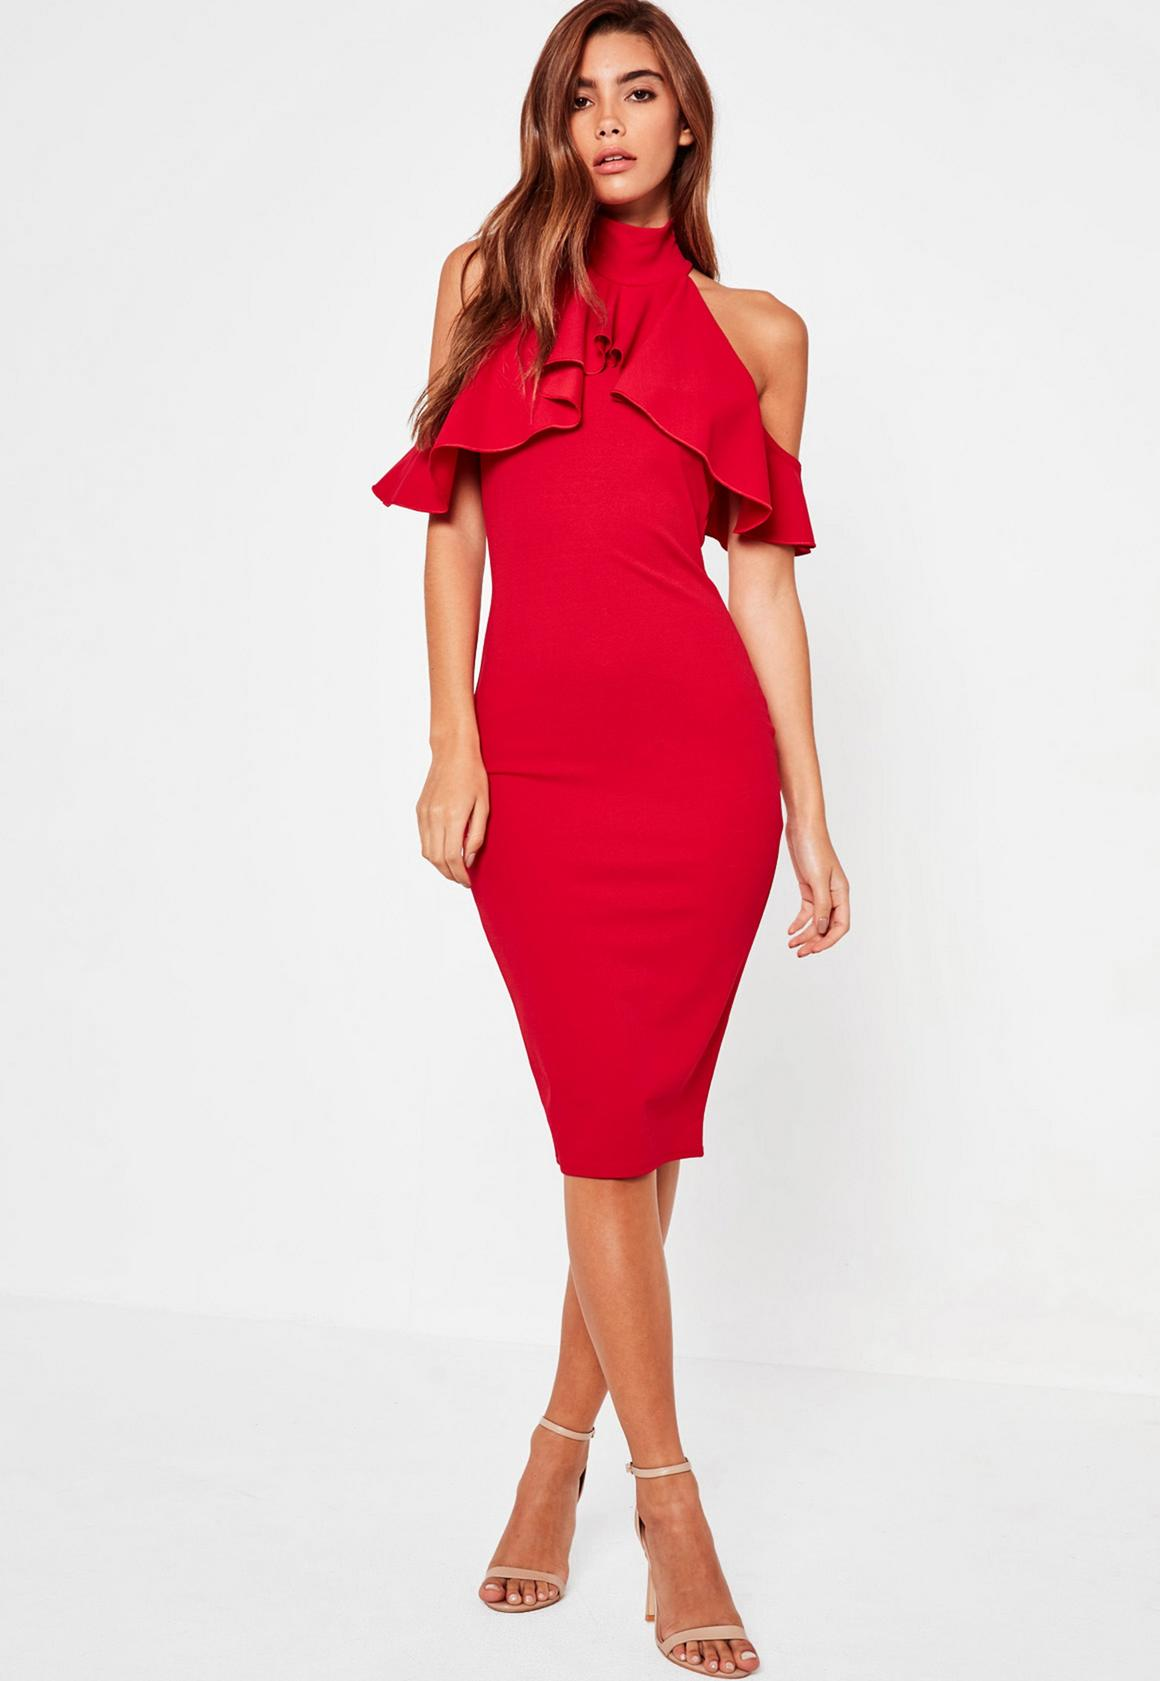 Achat robe rouge courte